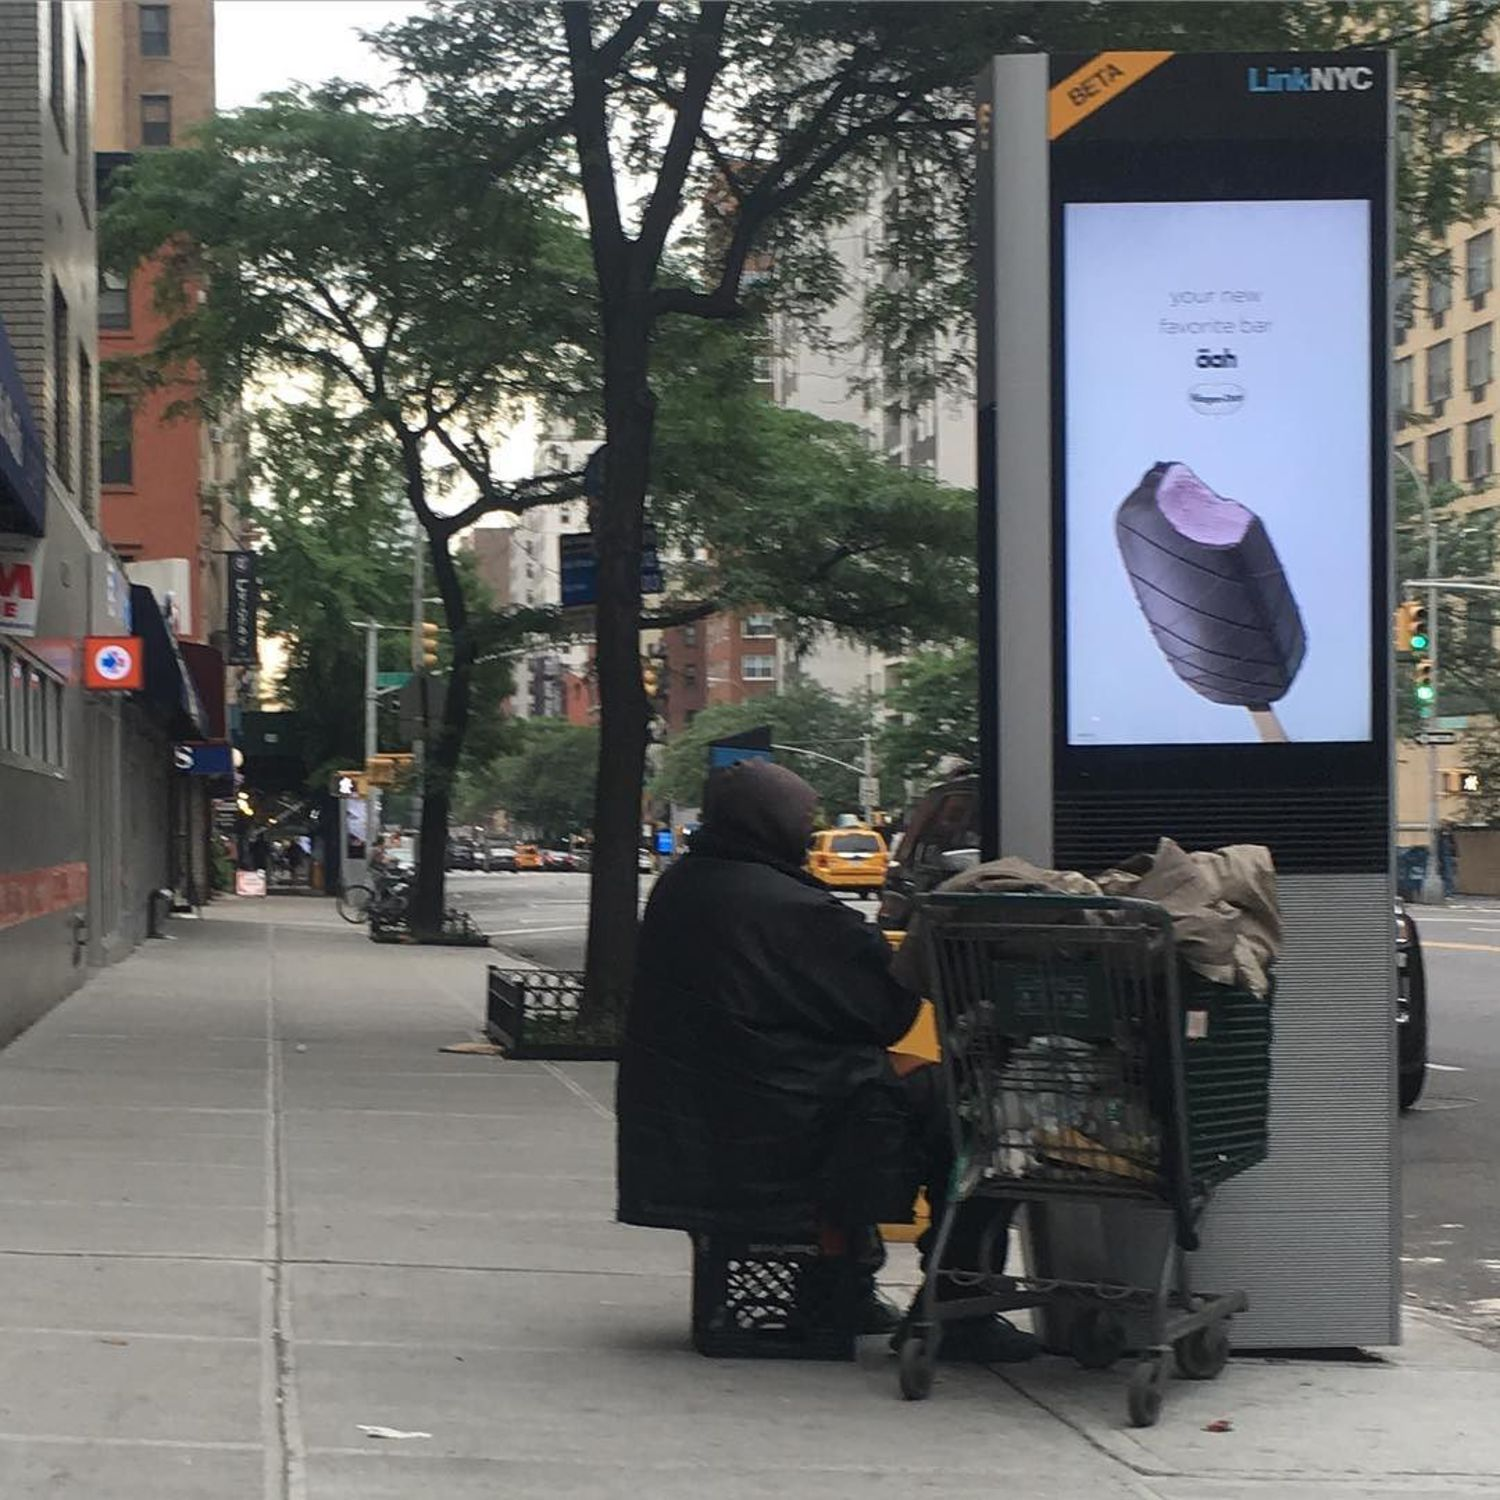 "#homeless charging phone #linknyc | via Instagram <a href=""http://ift.tt/28Zgpiv"" rel=""nofollow"">ift.tt/28Zgpiv</a>"